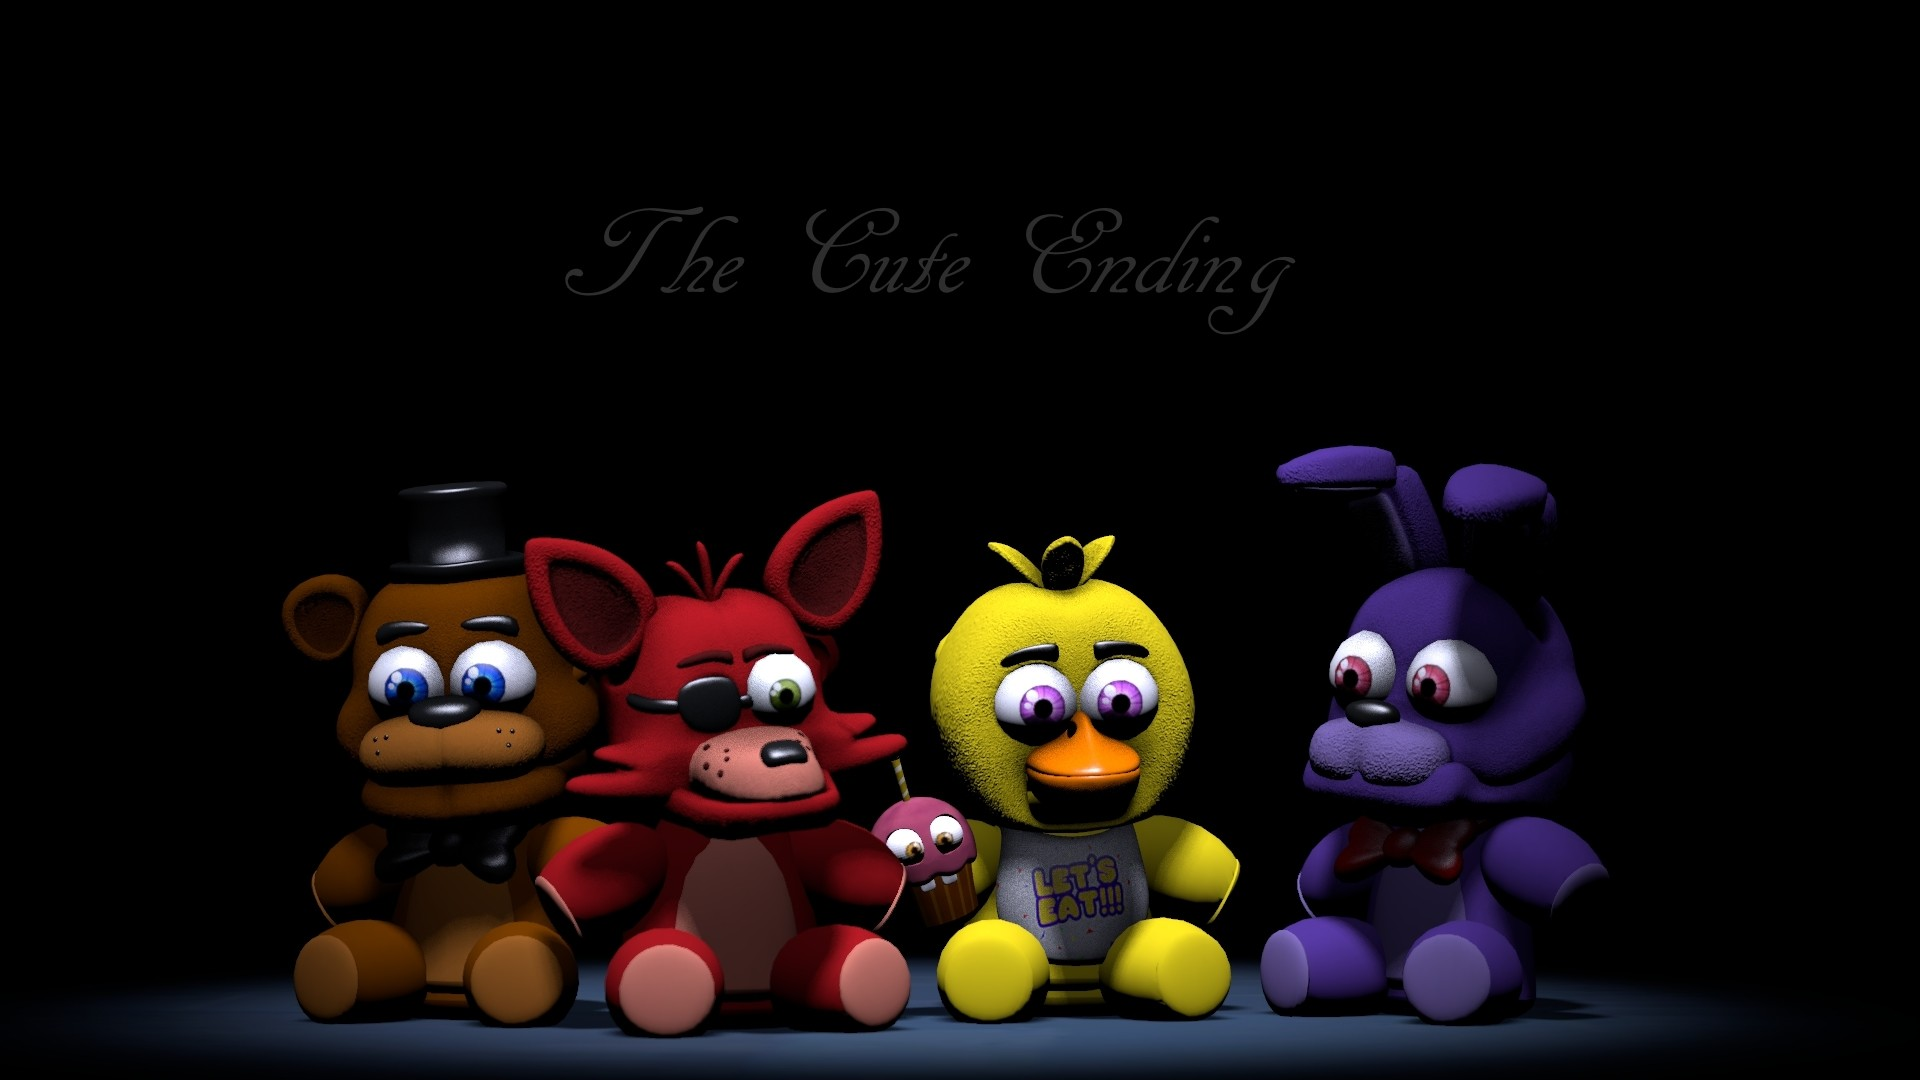 Res: 1920x1080, FNAF The cute ending by JoshyGamer201X FNAF The cute ending by  JoshyGamer201X